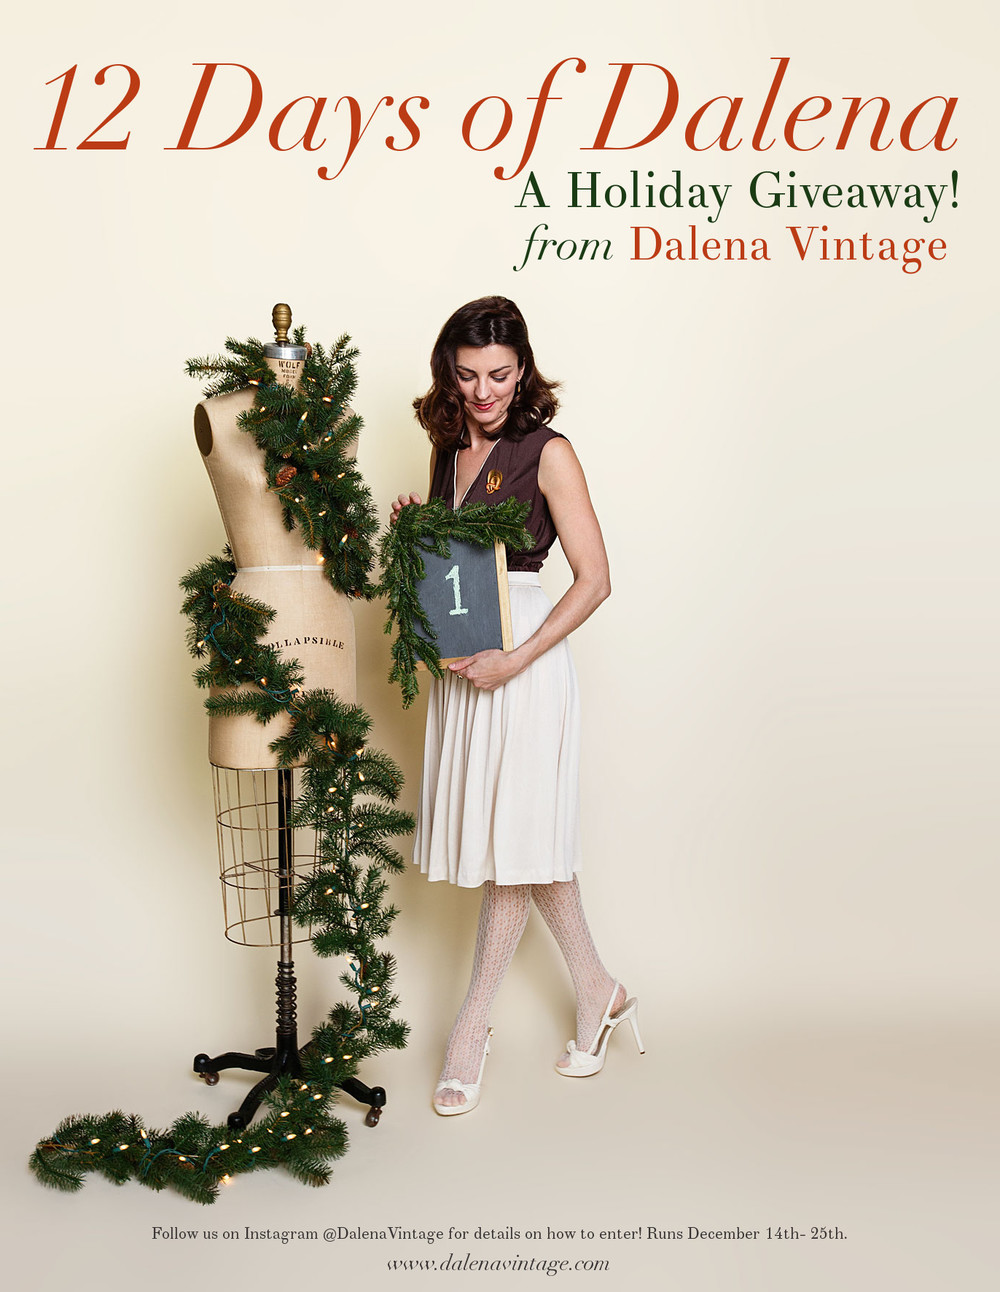 12 Days of Dalena, a holiday giveaway from Dalena Vintage.